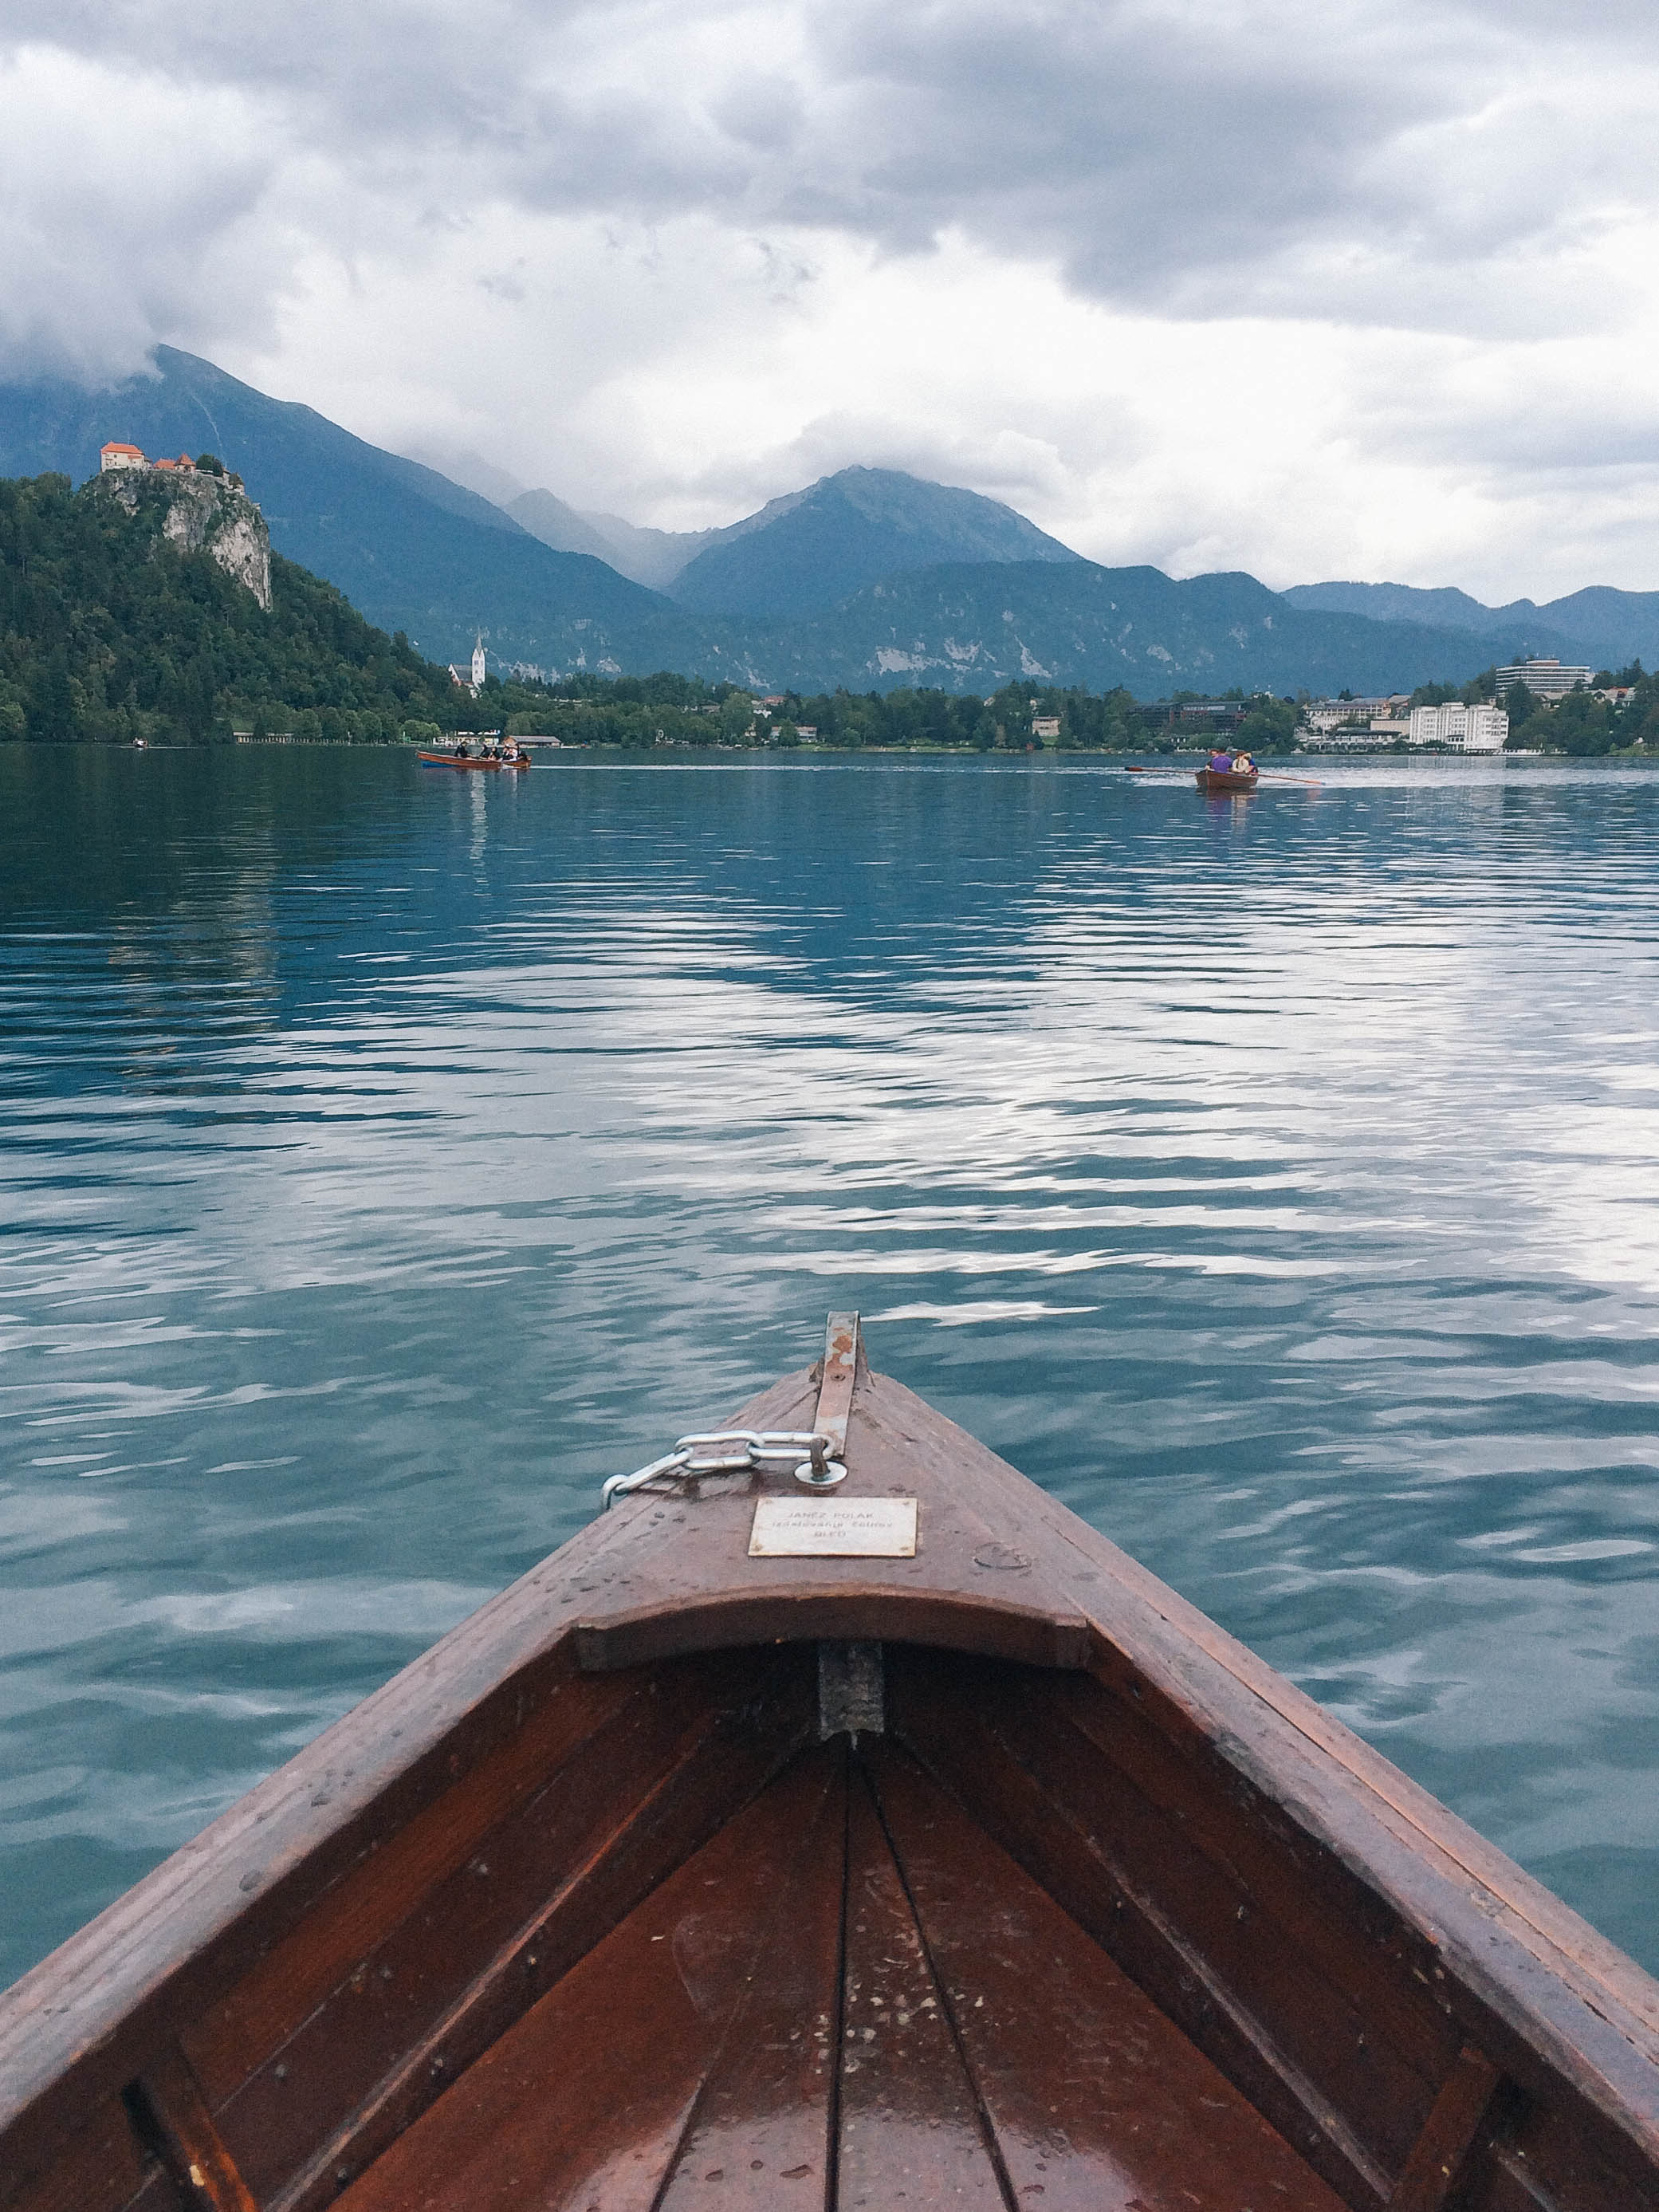 Rowing around Lake Bled, Slovenia with a view of Bled Castle